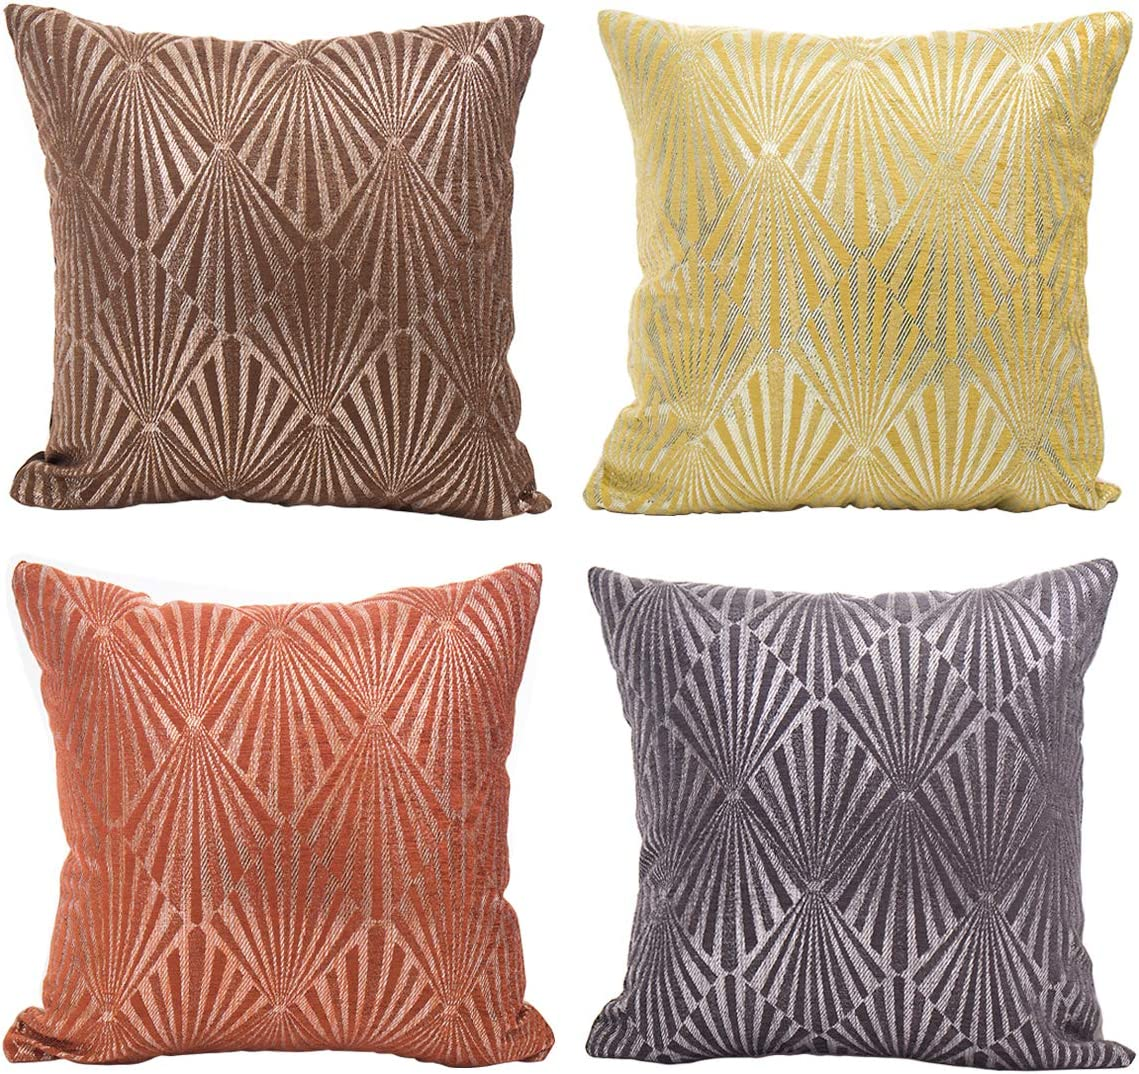 GreatforU Silver Flocking Cushion Covers, Euro Sham Throw Pillow Covers Pillowcase for Sofa Office Car Living Room Home Decoration, 18x18 Inches, Set of 4, 45 x 45 cm, Orange Grey Yellow Coffee Color